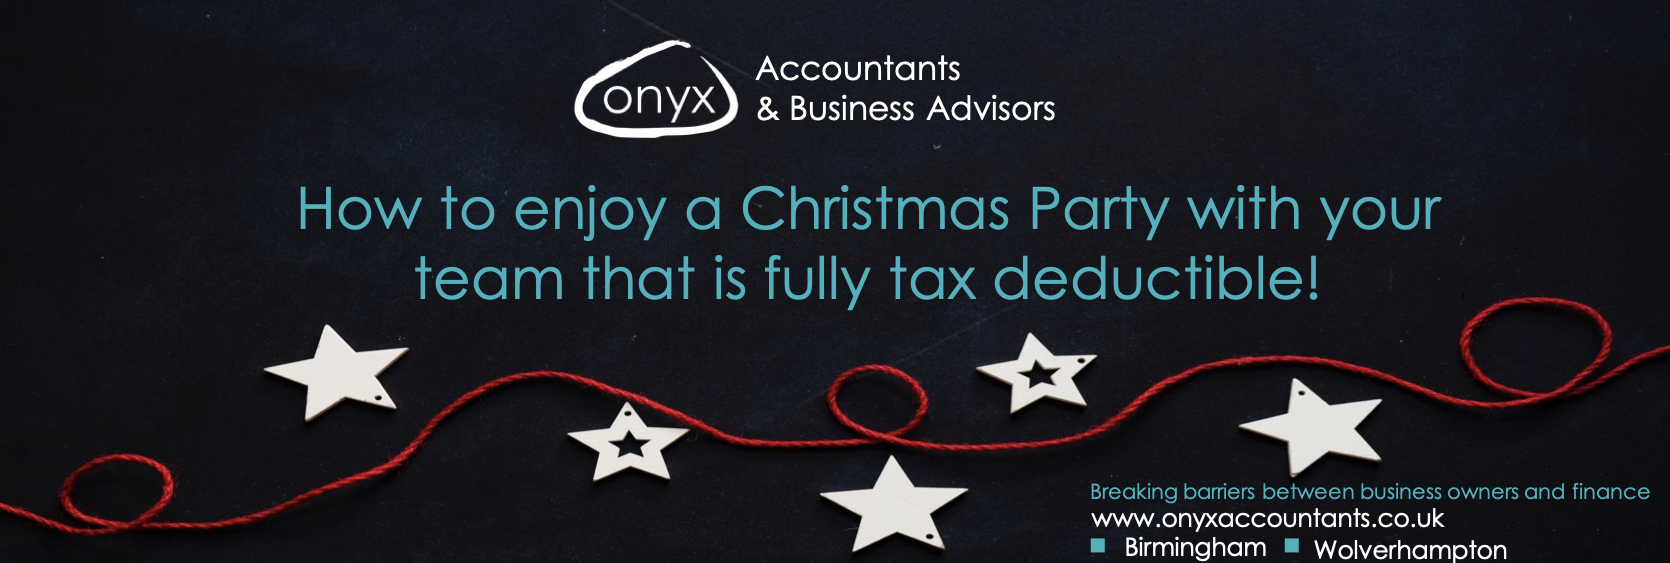 How to enjoy a Christmas Party with your team that is fully tax deductible!